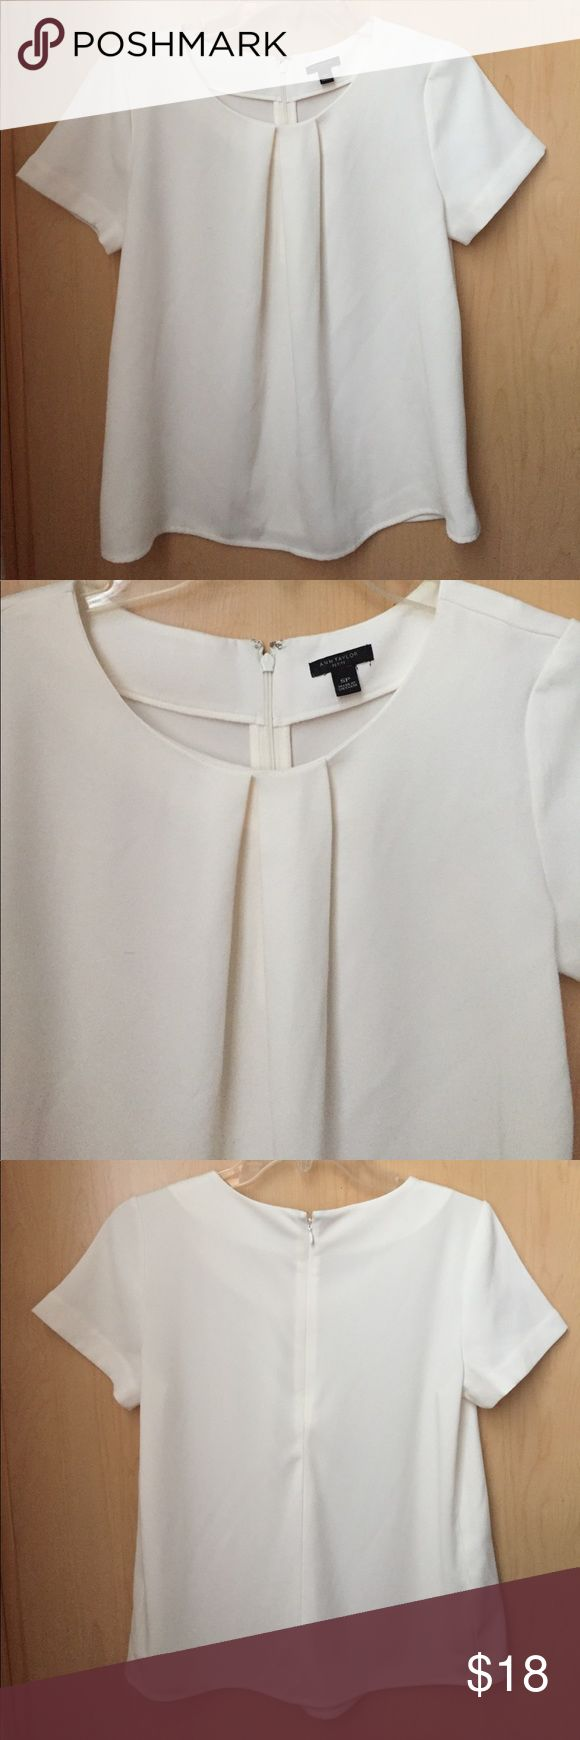 🆕 Ann Taylor Petite Blouse Cream petite blouse from Ann Taylor. One large accent pleat in front. Tiny exposed zipper in back. Has been worn but in great overall condition. Ann Taylor Tops Blouses